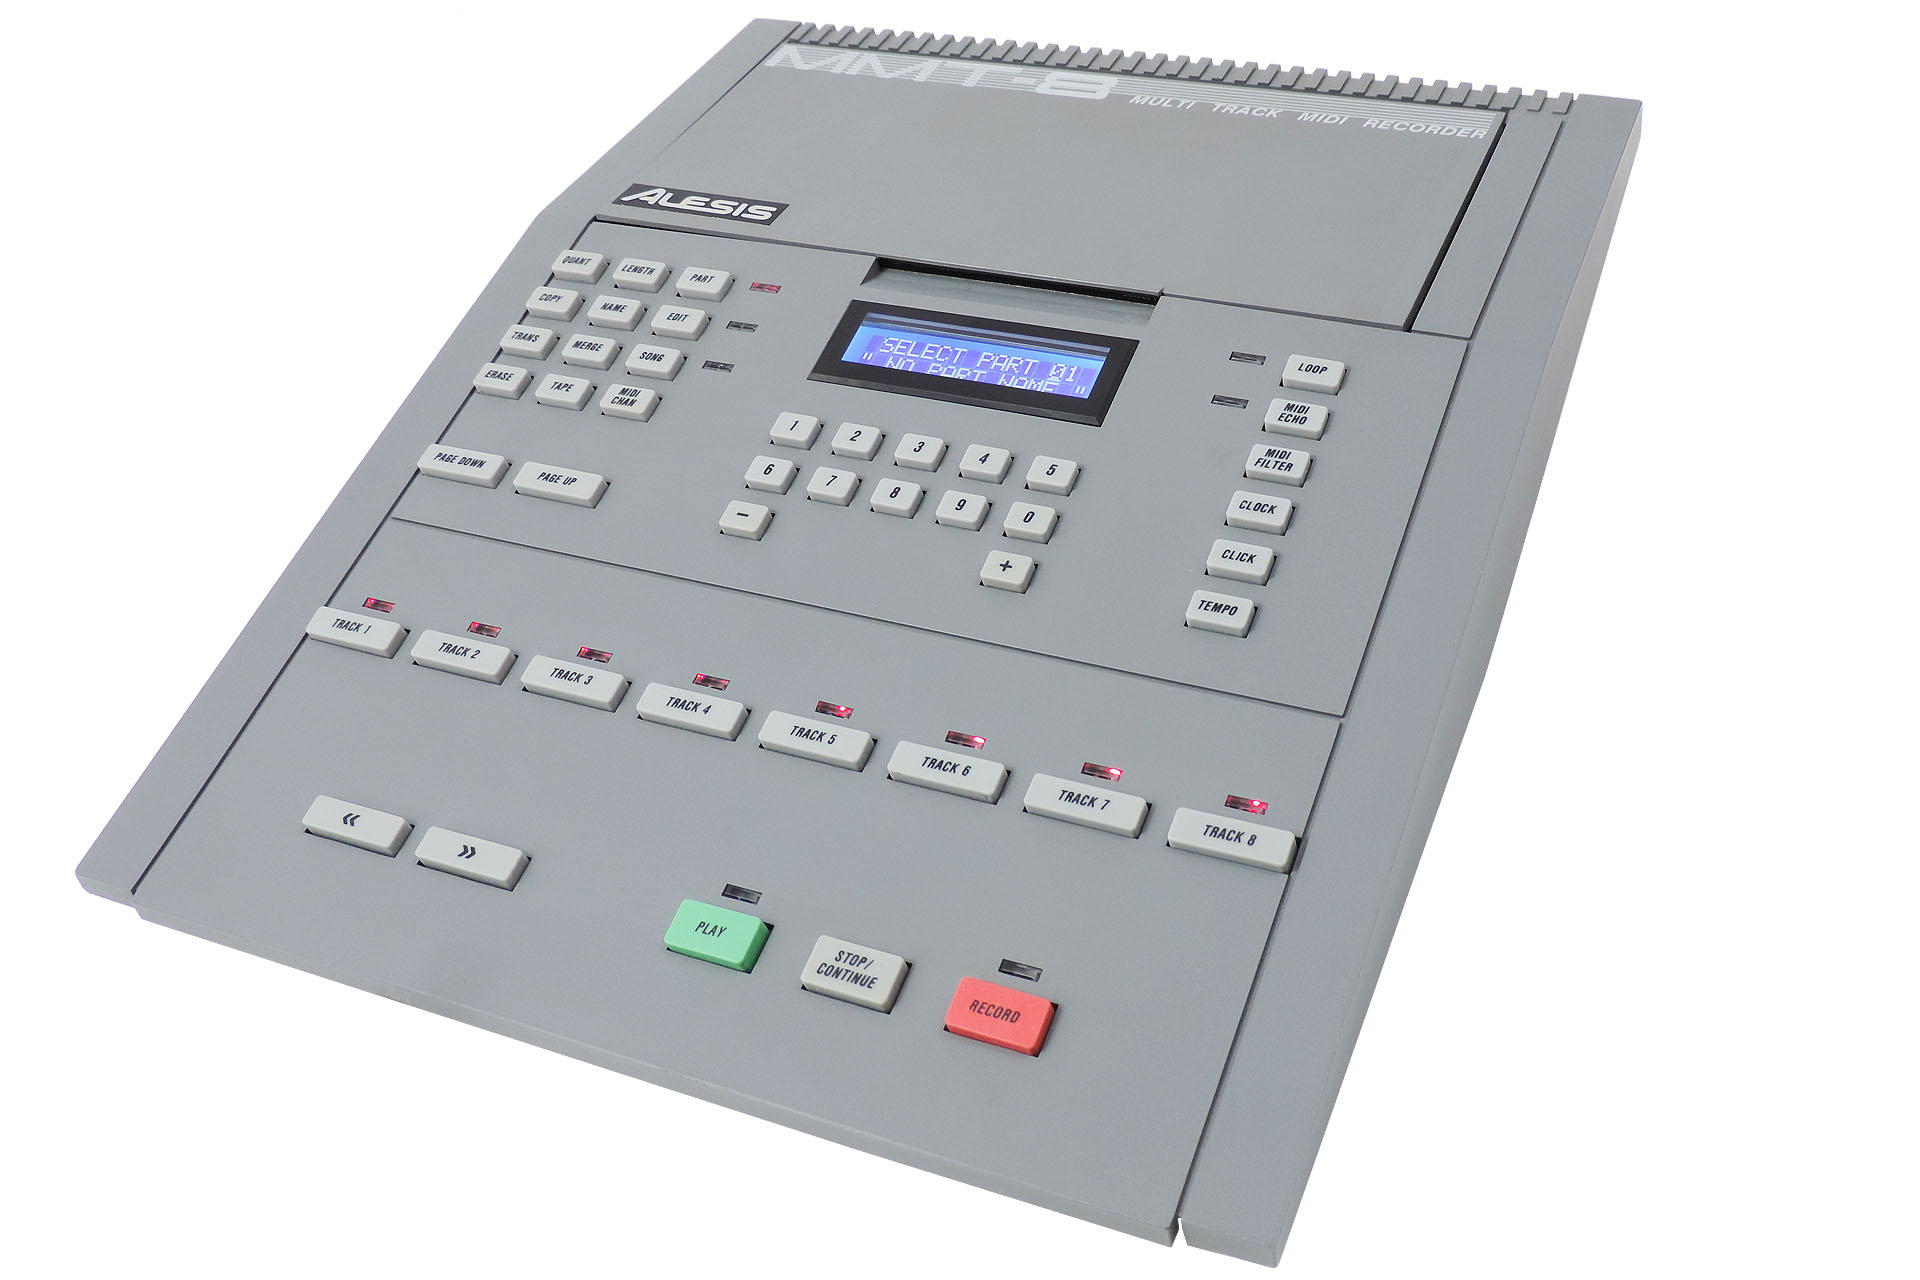 An Alesis MMT-8 from the late eighties. Fully refurbished in 2020